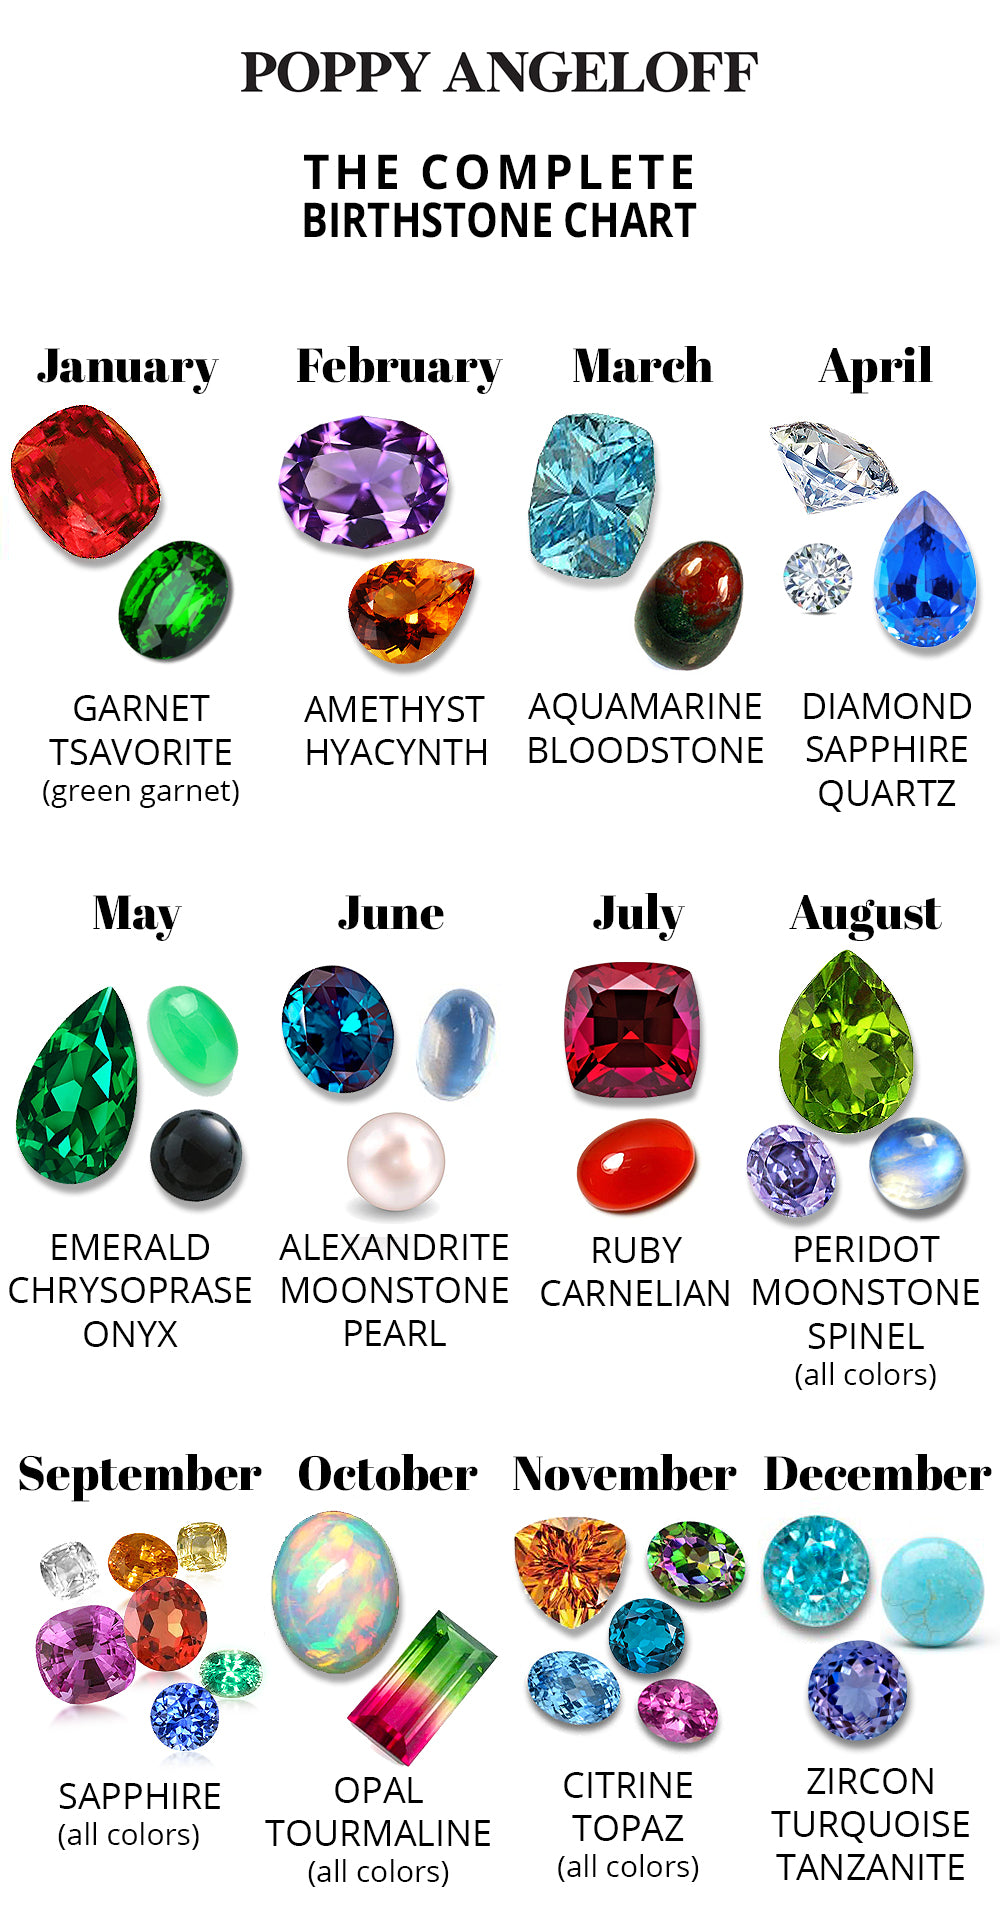 The Complete Alternative Birthstone Chart